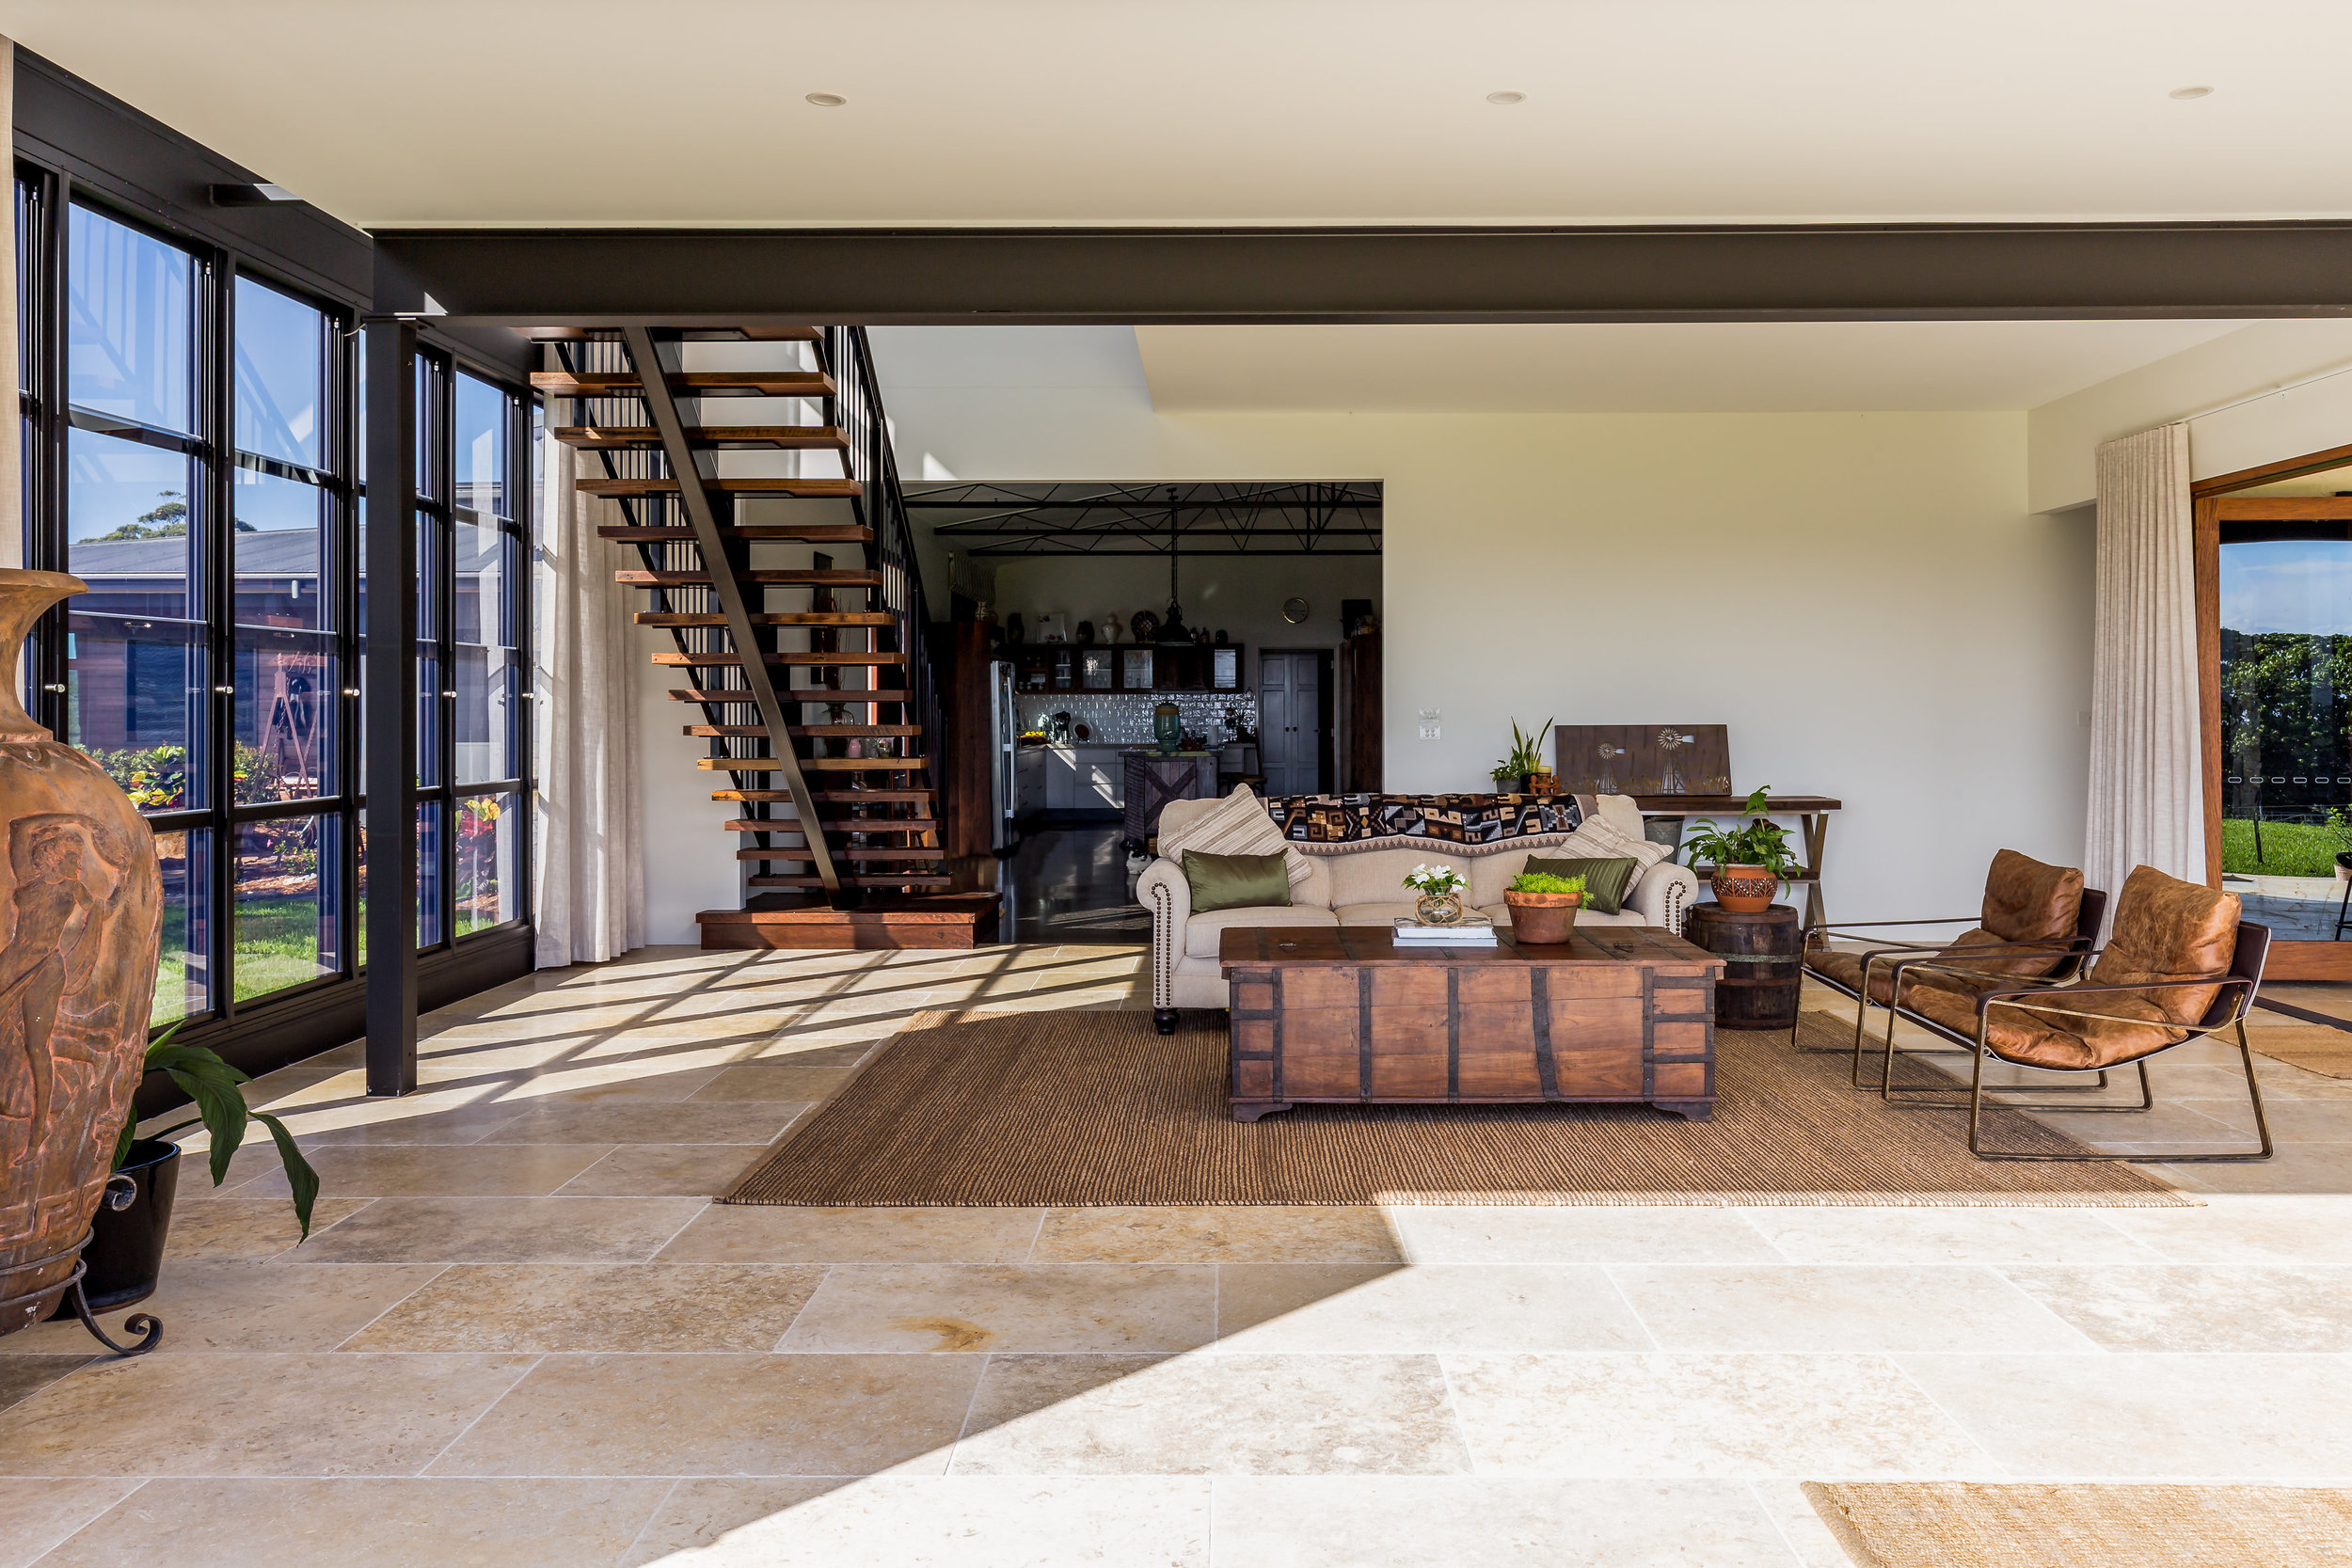 TUNISIAN GOLD LIMESTONE FLOORING    AT OUR CUDGEN HOMESTEAD PROJECT BY    ARCO DESIGNS    | PHOTO BY    TIM CASAGRANDE